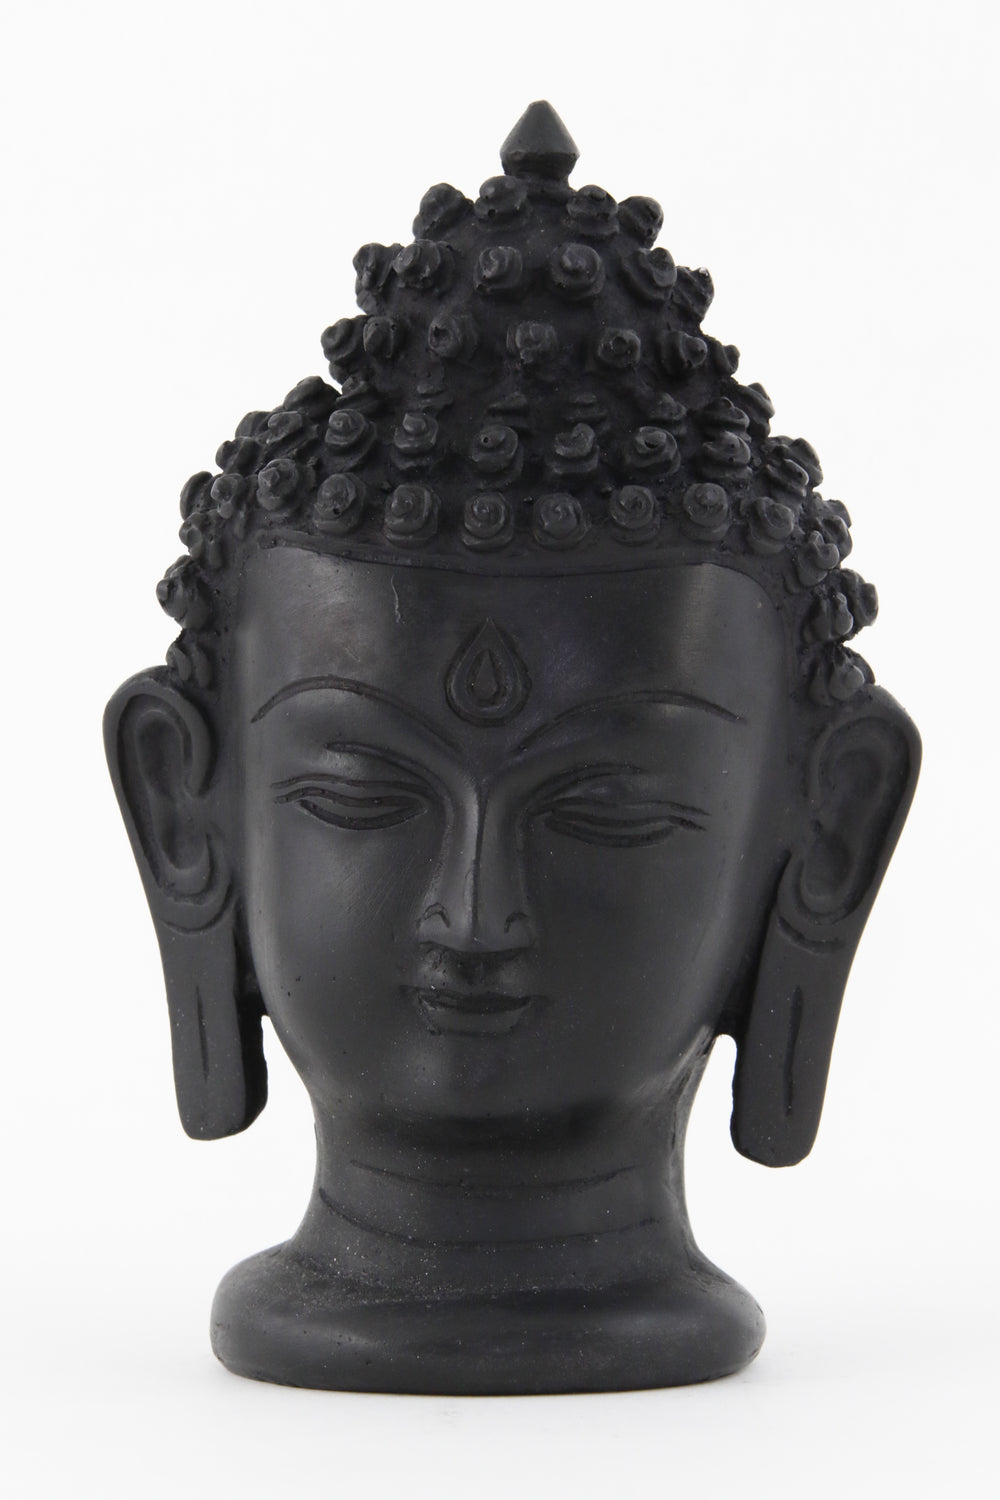 BUDDHA HEAD STATUE DARK LARGE FRONT VIEW